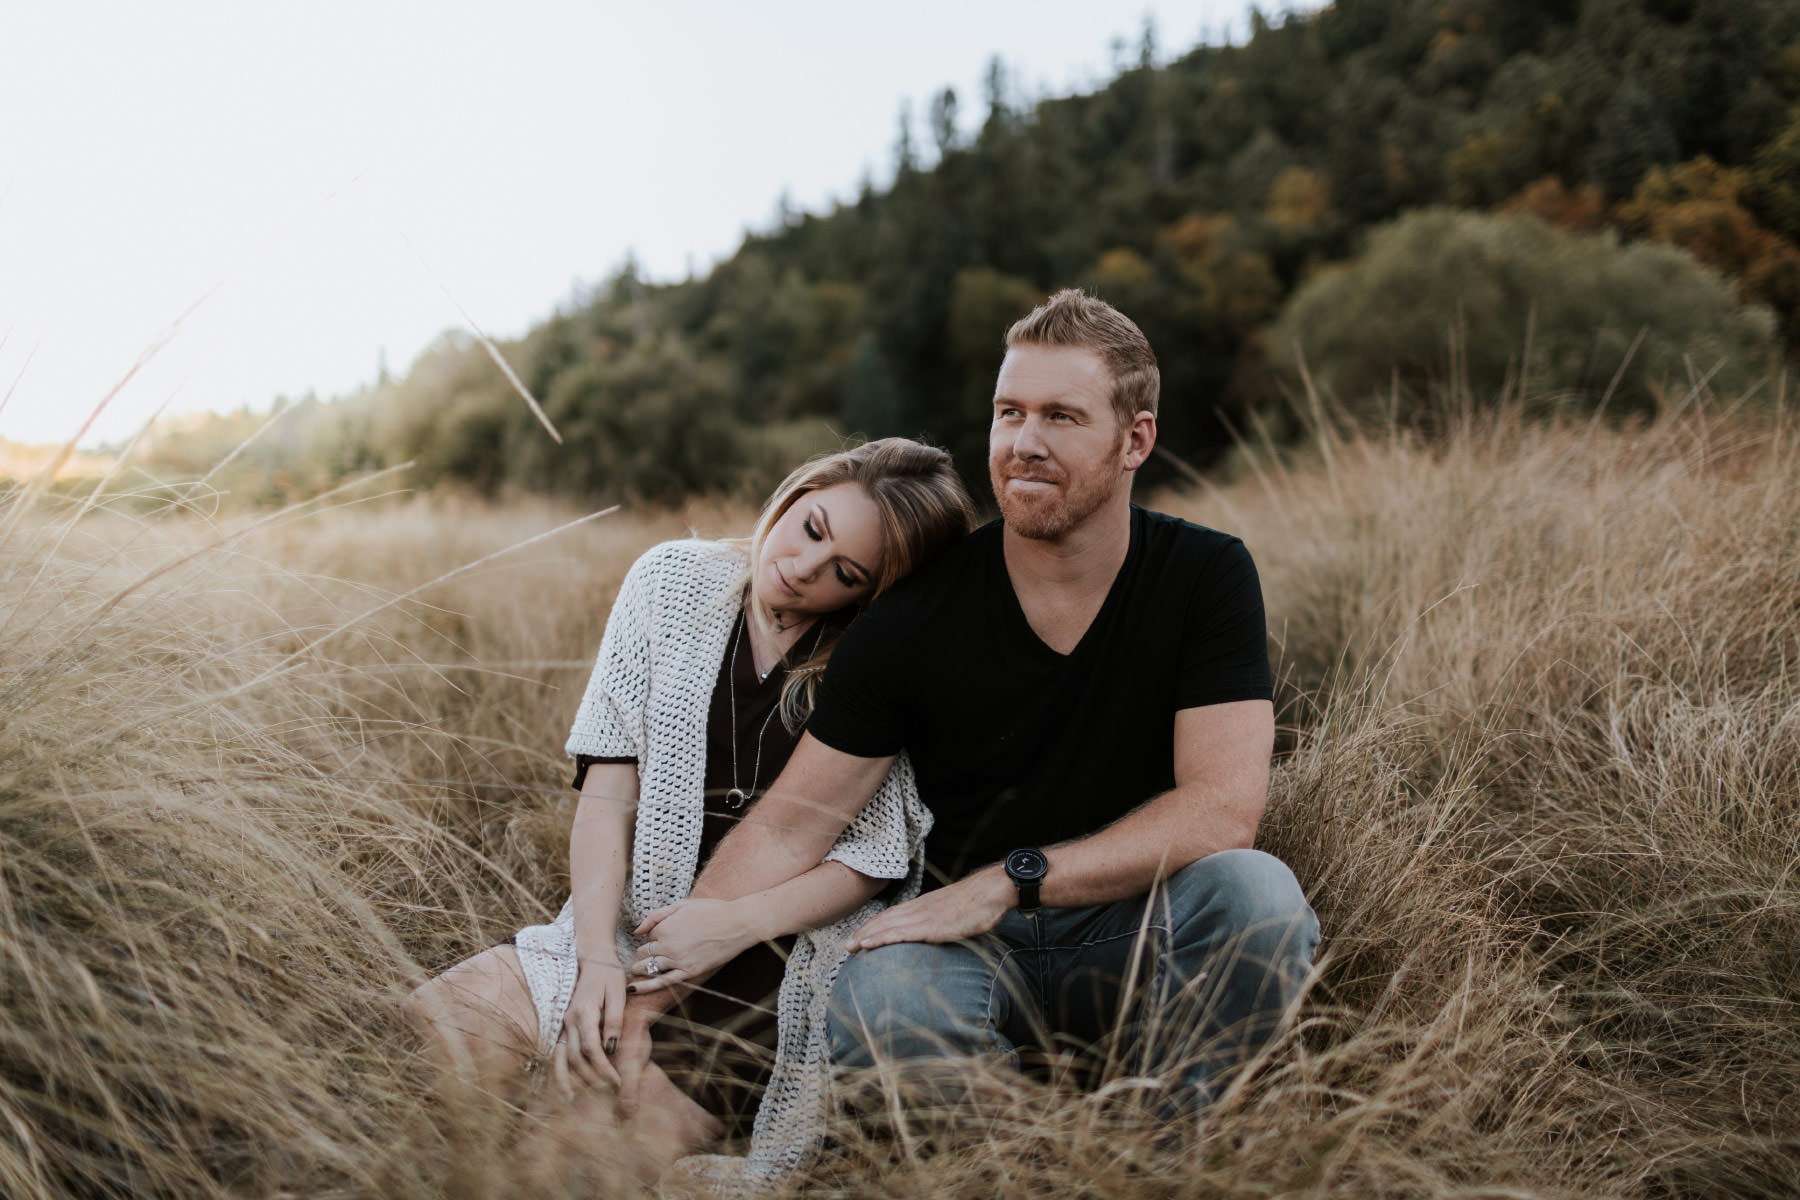 Engaged couple cuddling in a field at Palomar Mountain